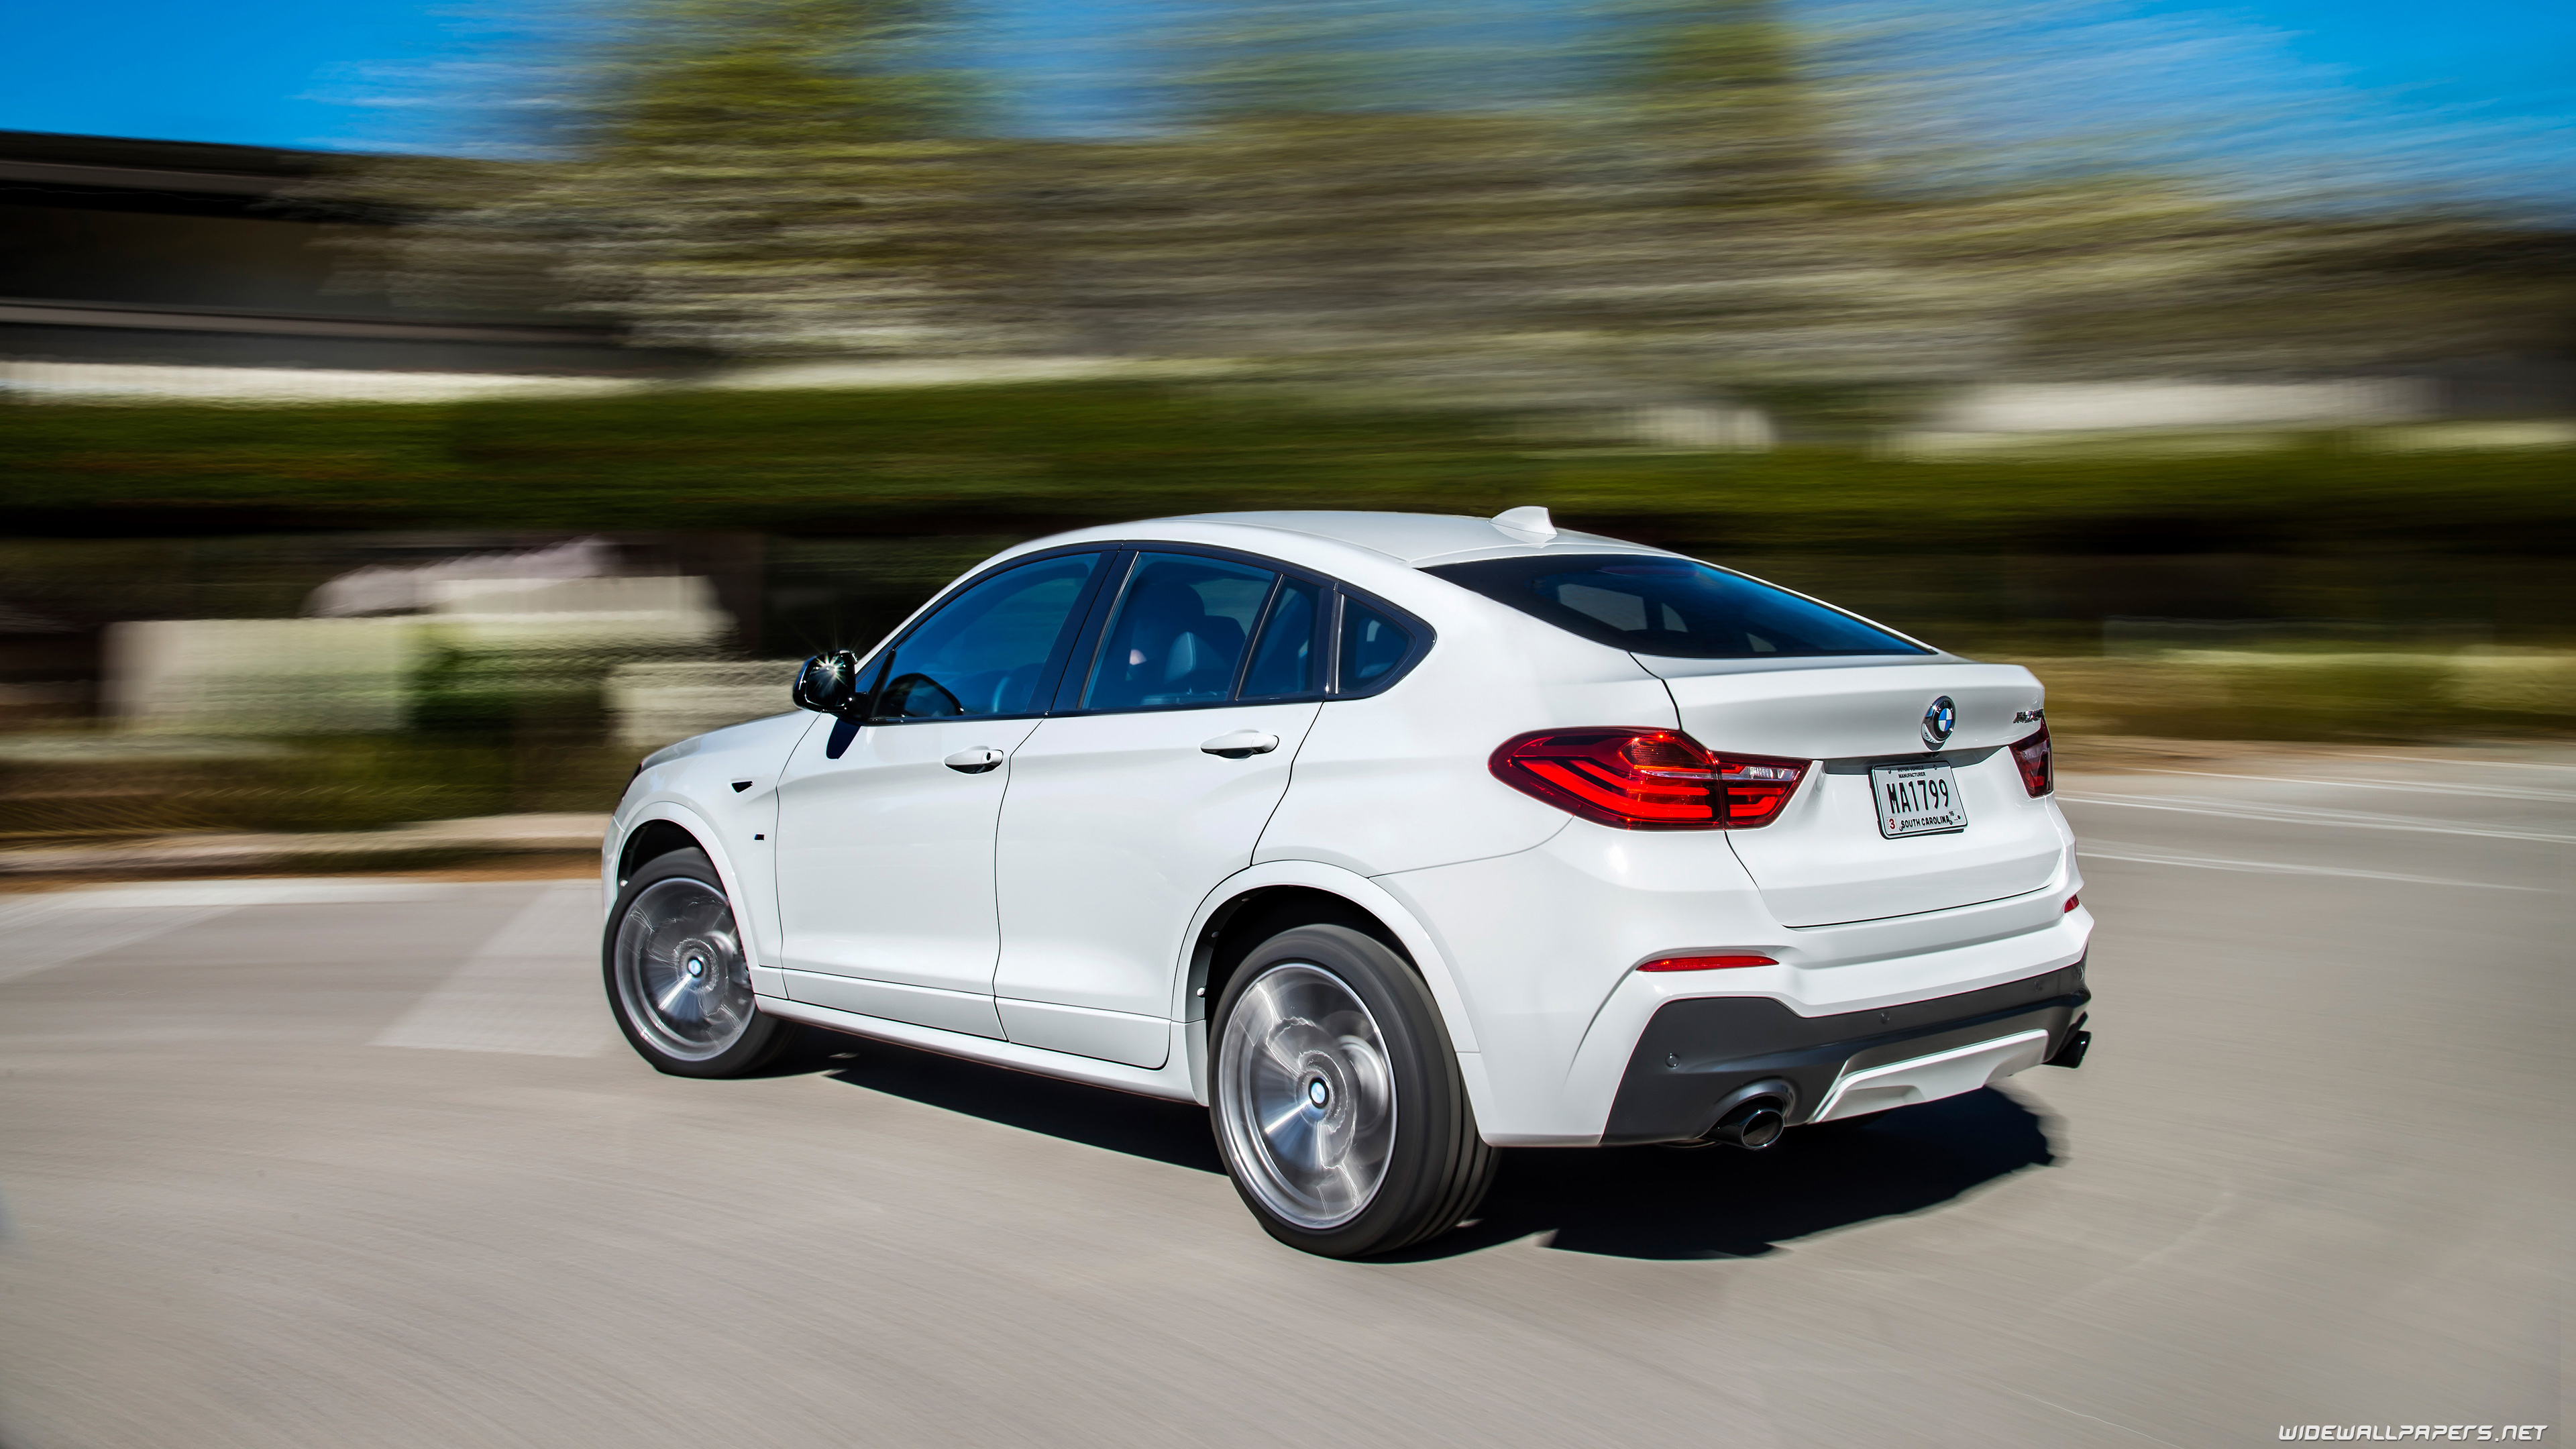 3840x2160 - BMW X4 Wallpapers 8